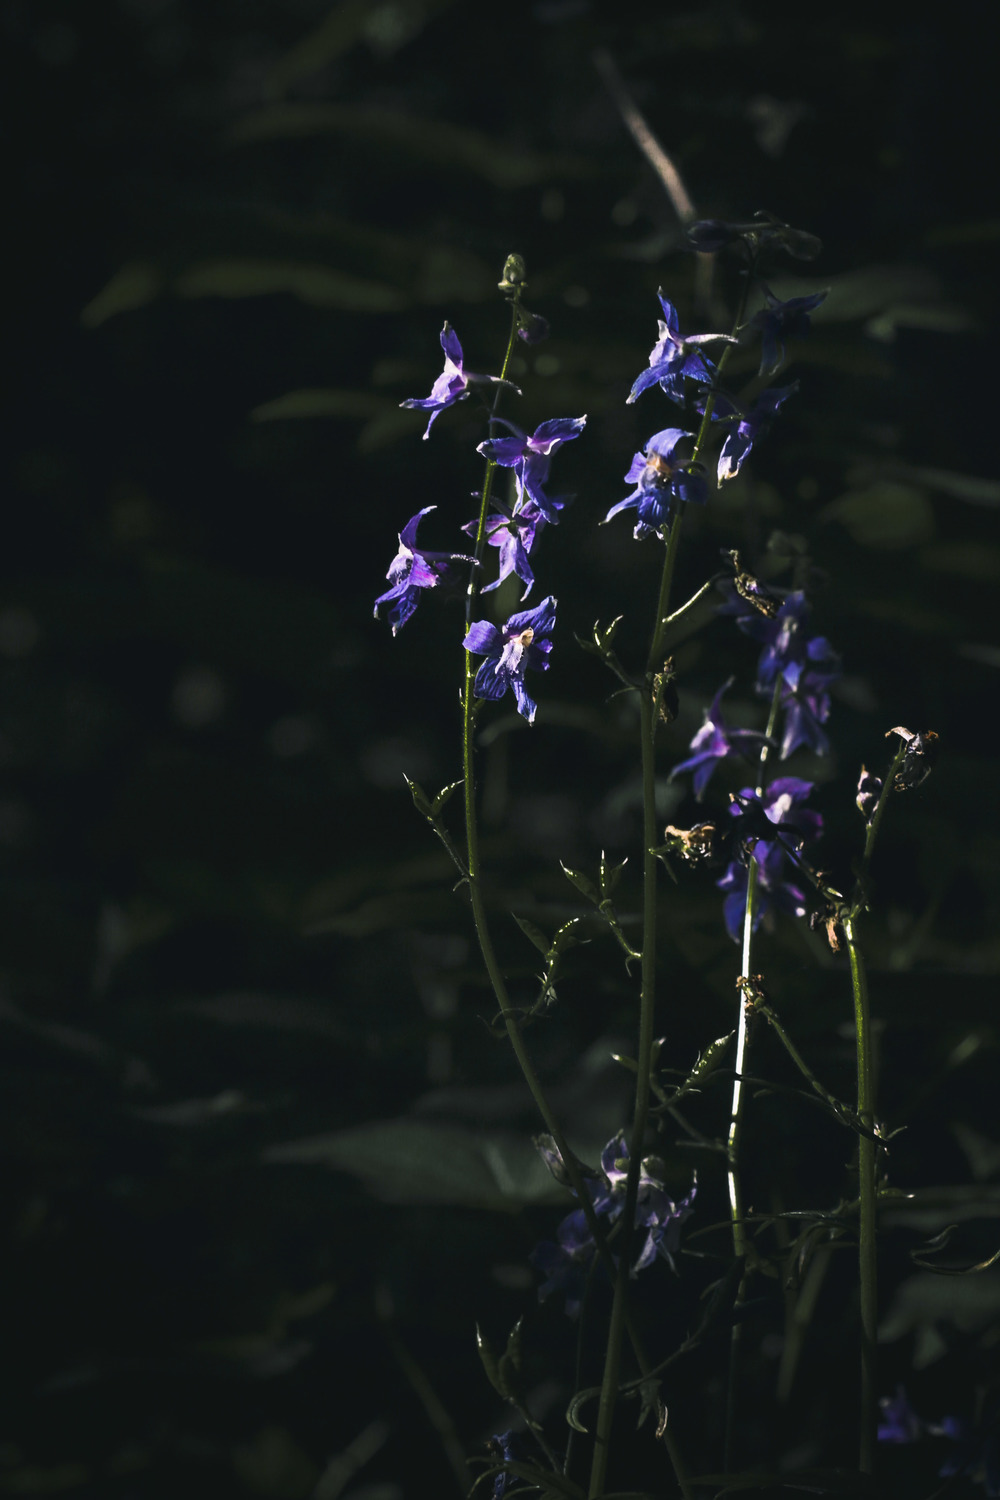 20150527-purple flower_.jpg